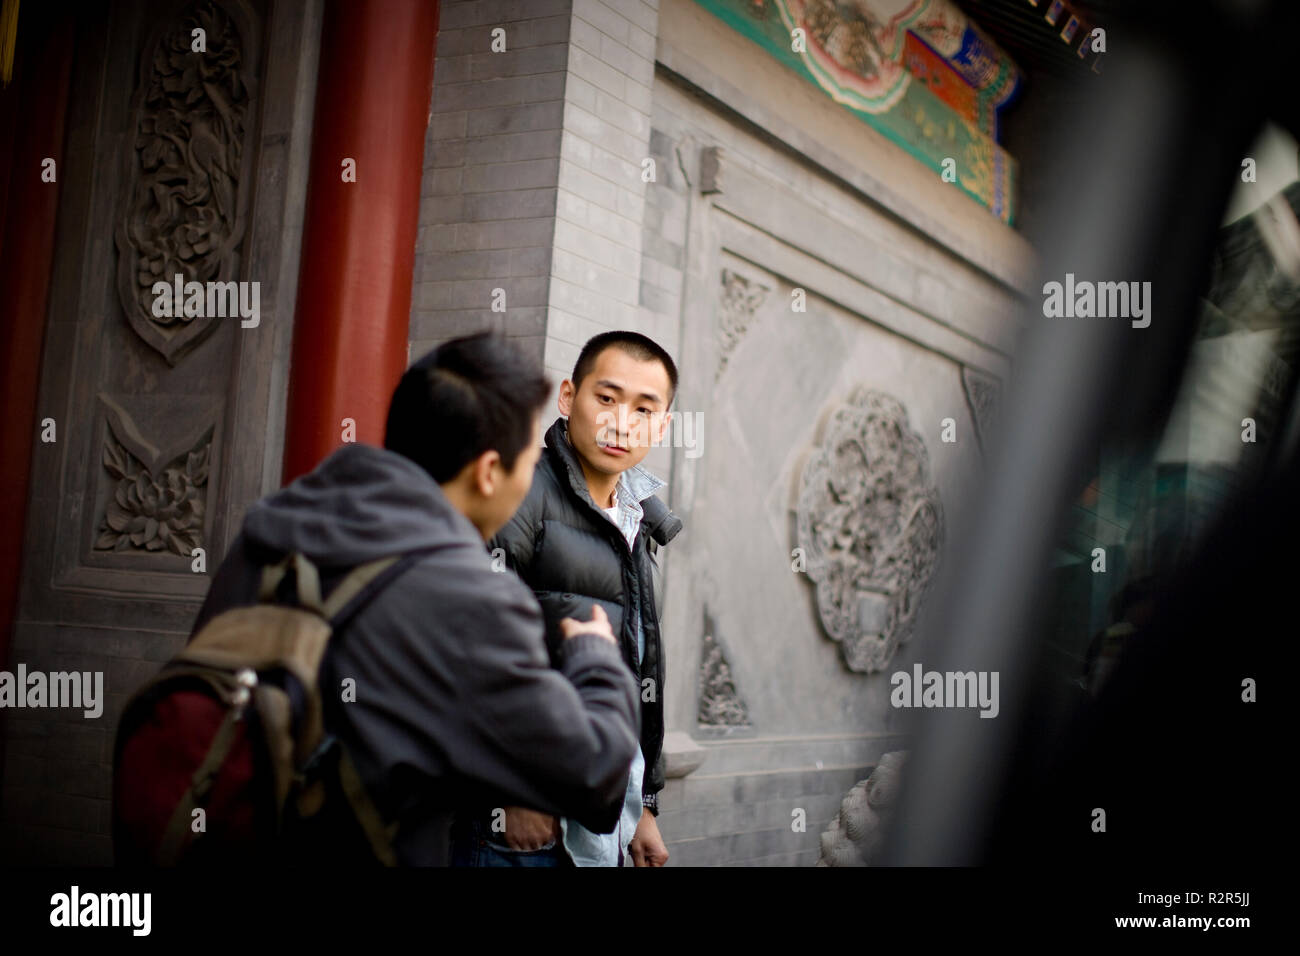 Teenage boy standing with a friend outside school. - Stock Image